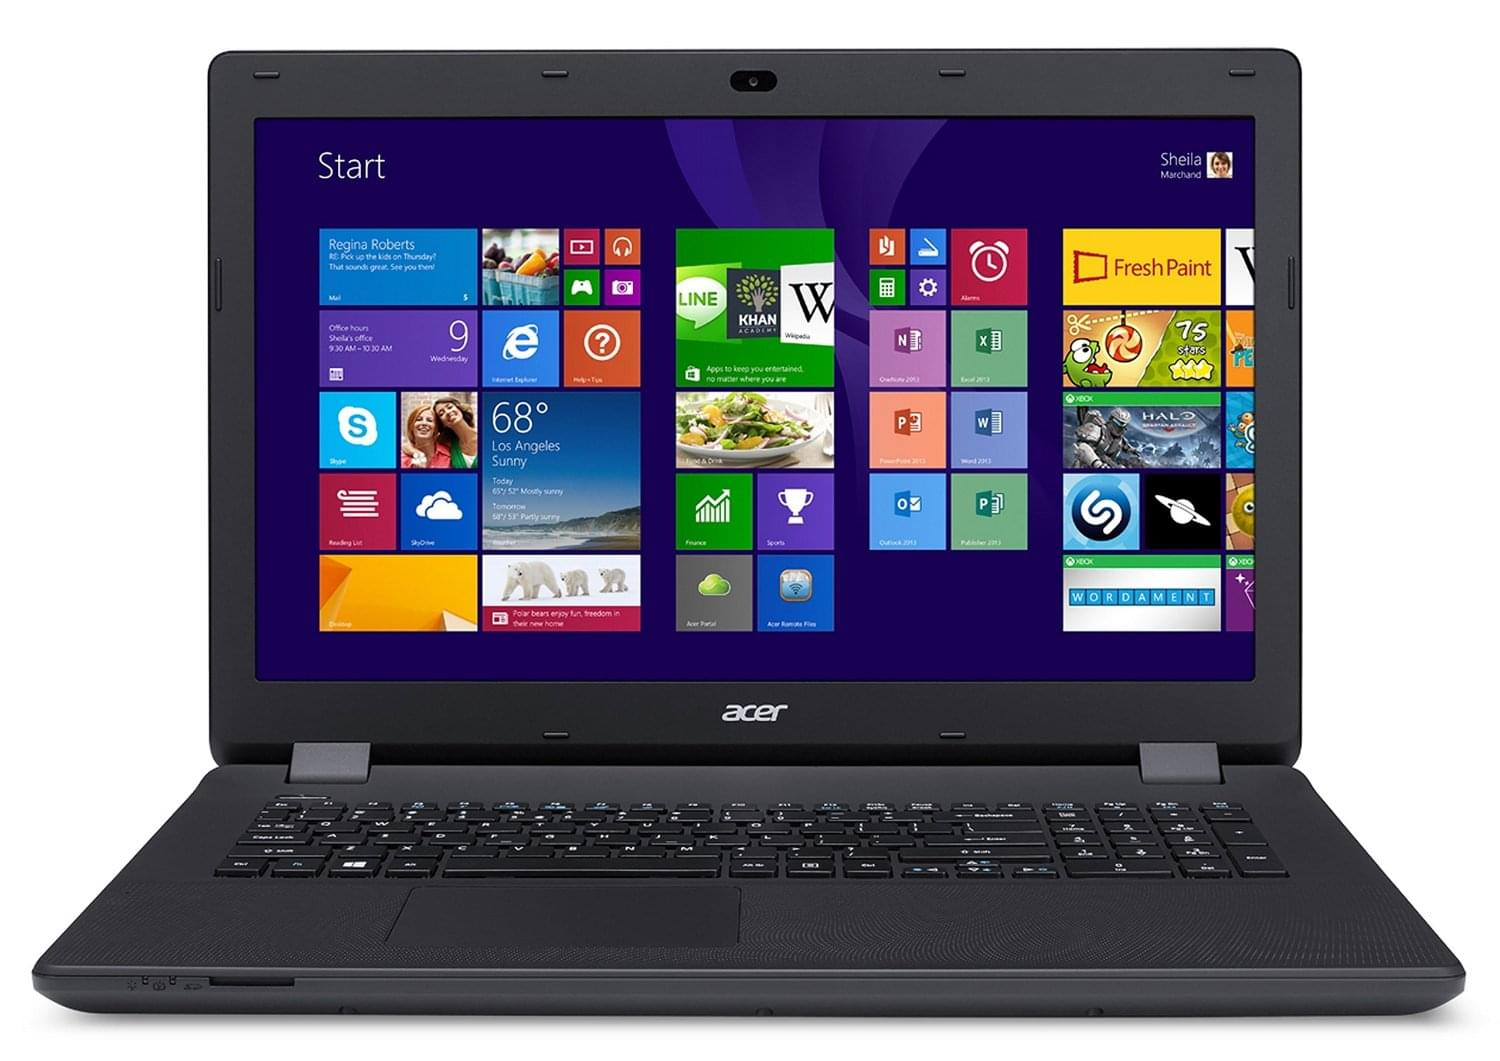 Acer NX.MS2EF.008 arret work-it - PC portable Acer - Cybertek.fr - 0